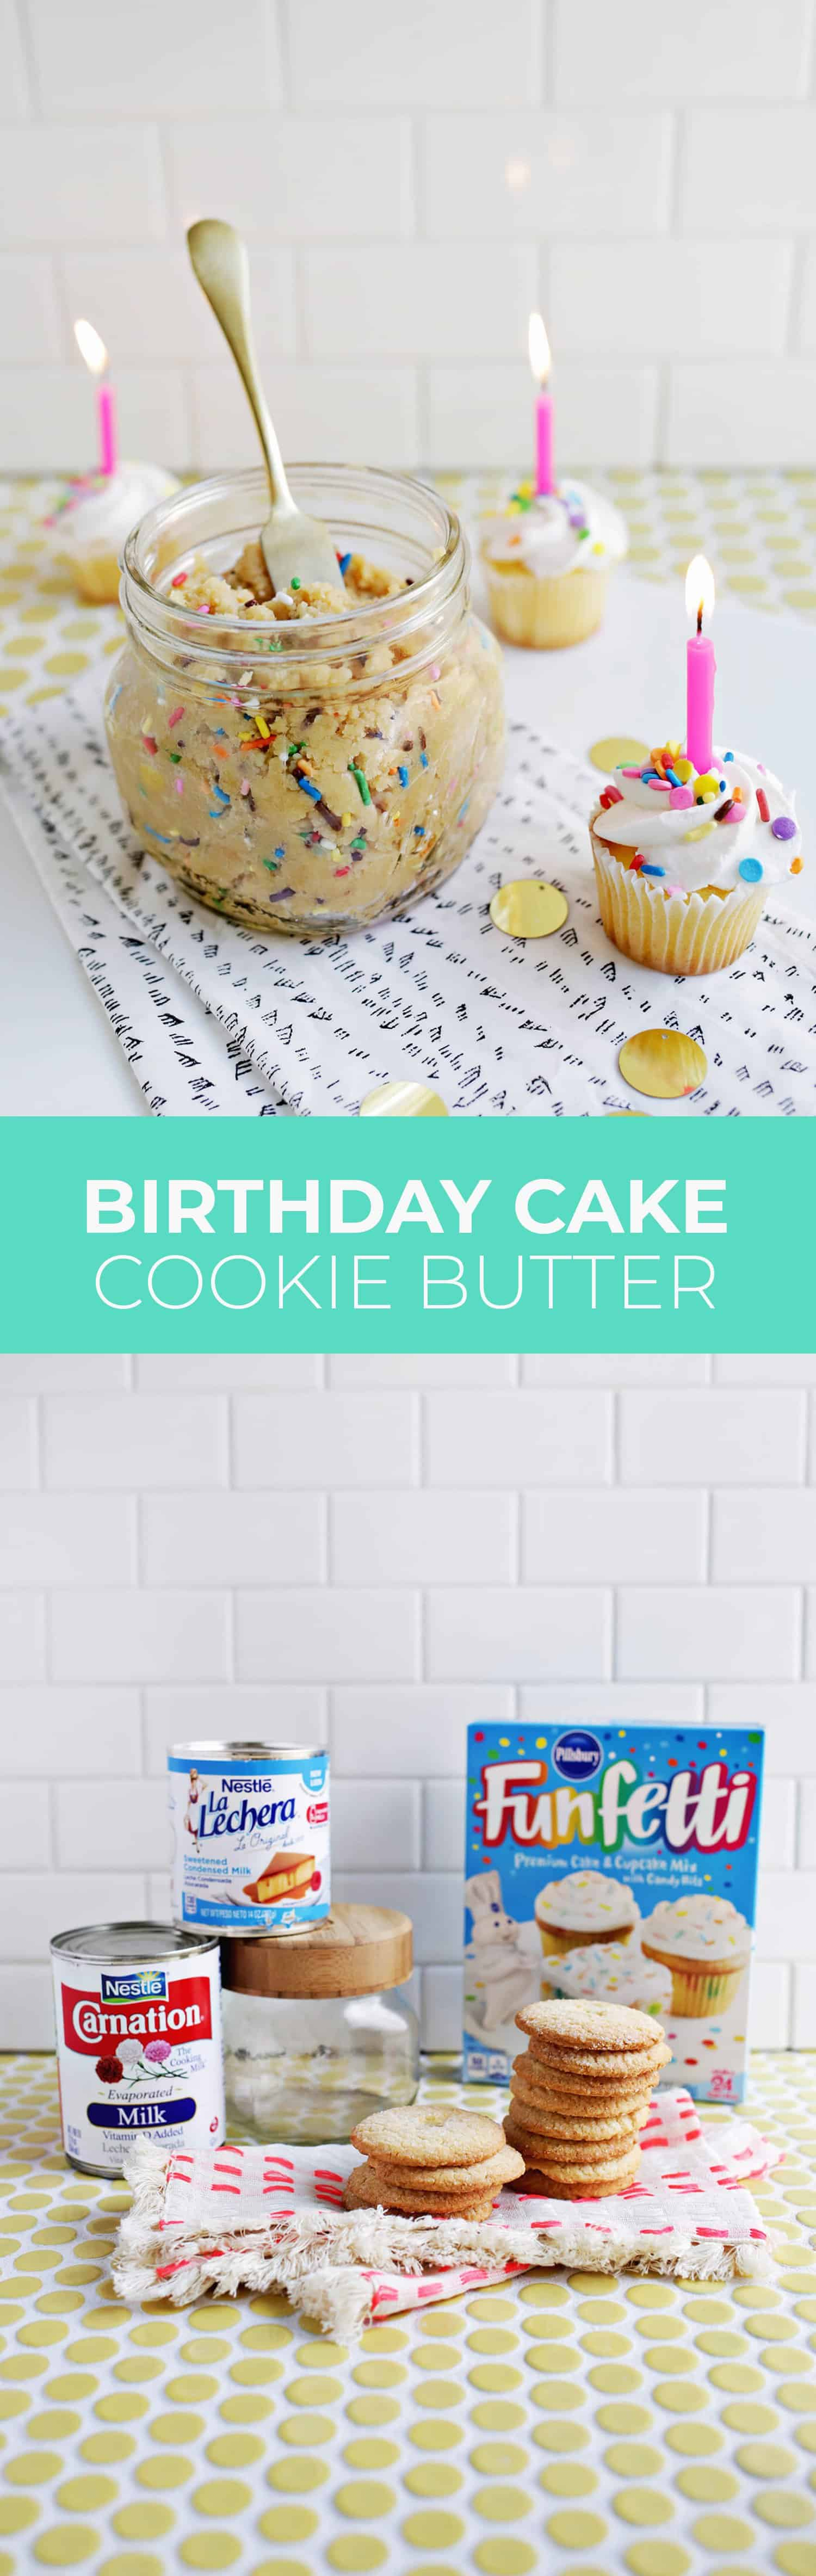 Birthday Cake Cookie Butter | A Beautiful Mess | Bloglovin\'